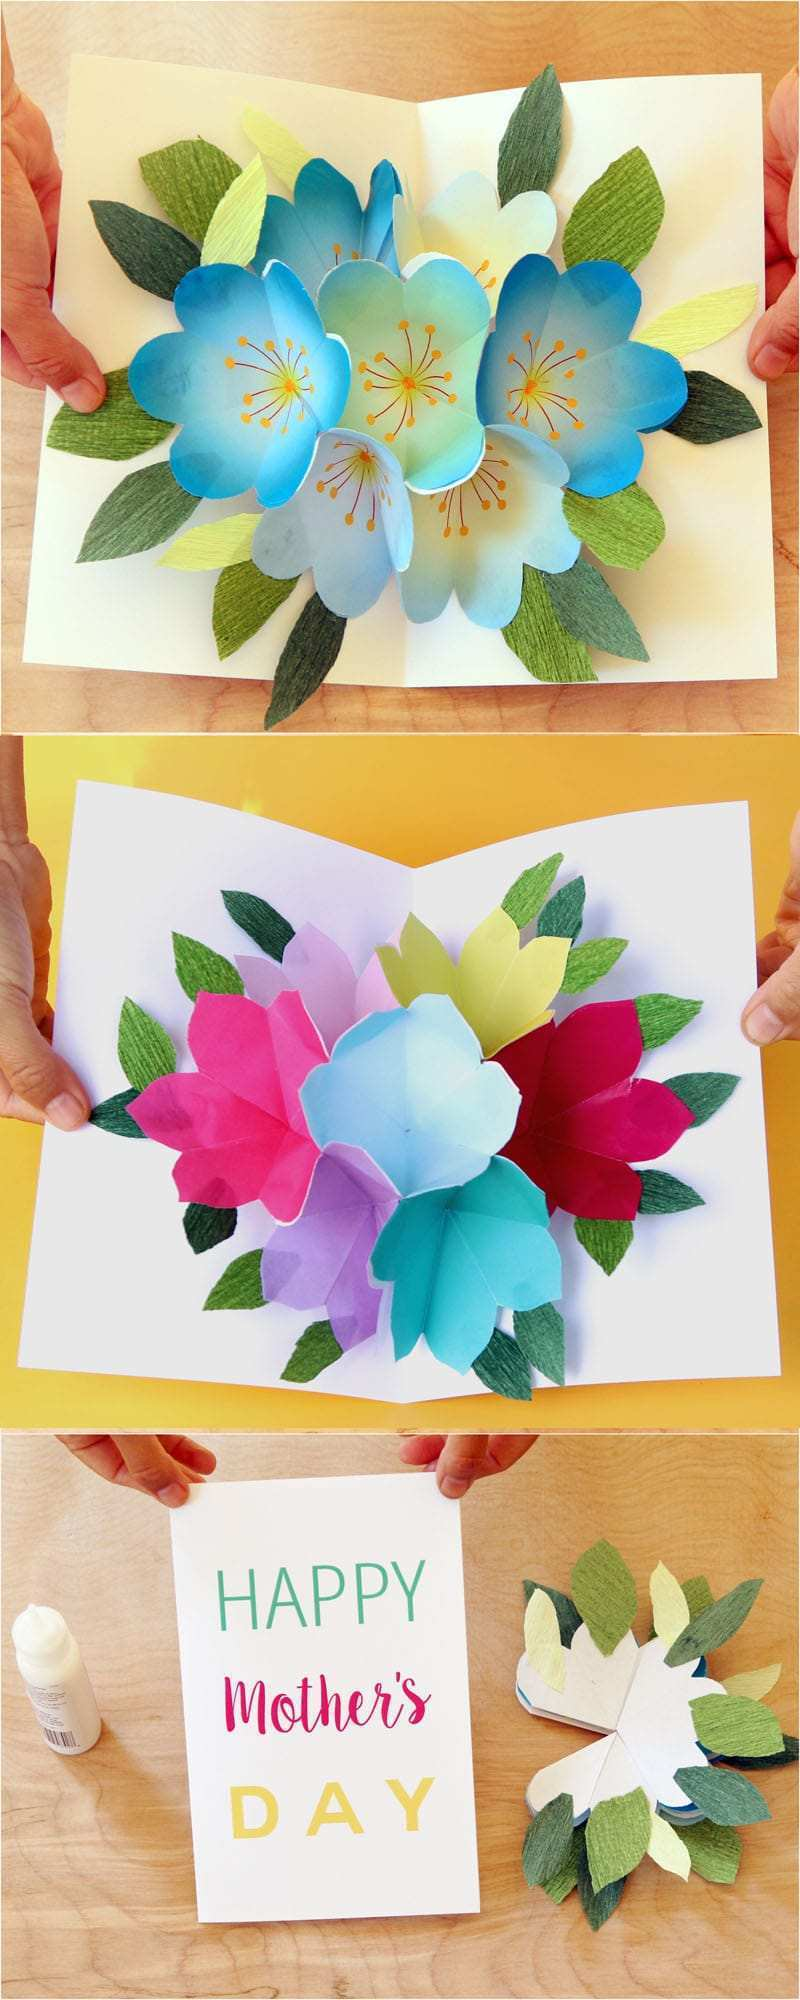 12 How To Create Mother S Day Card Templates To Make Formating by Mother S Day Card Templates To Make